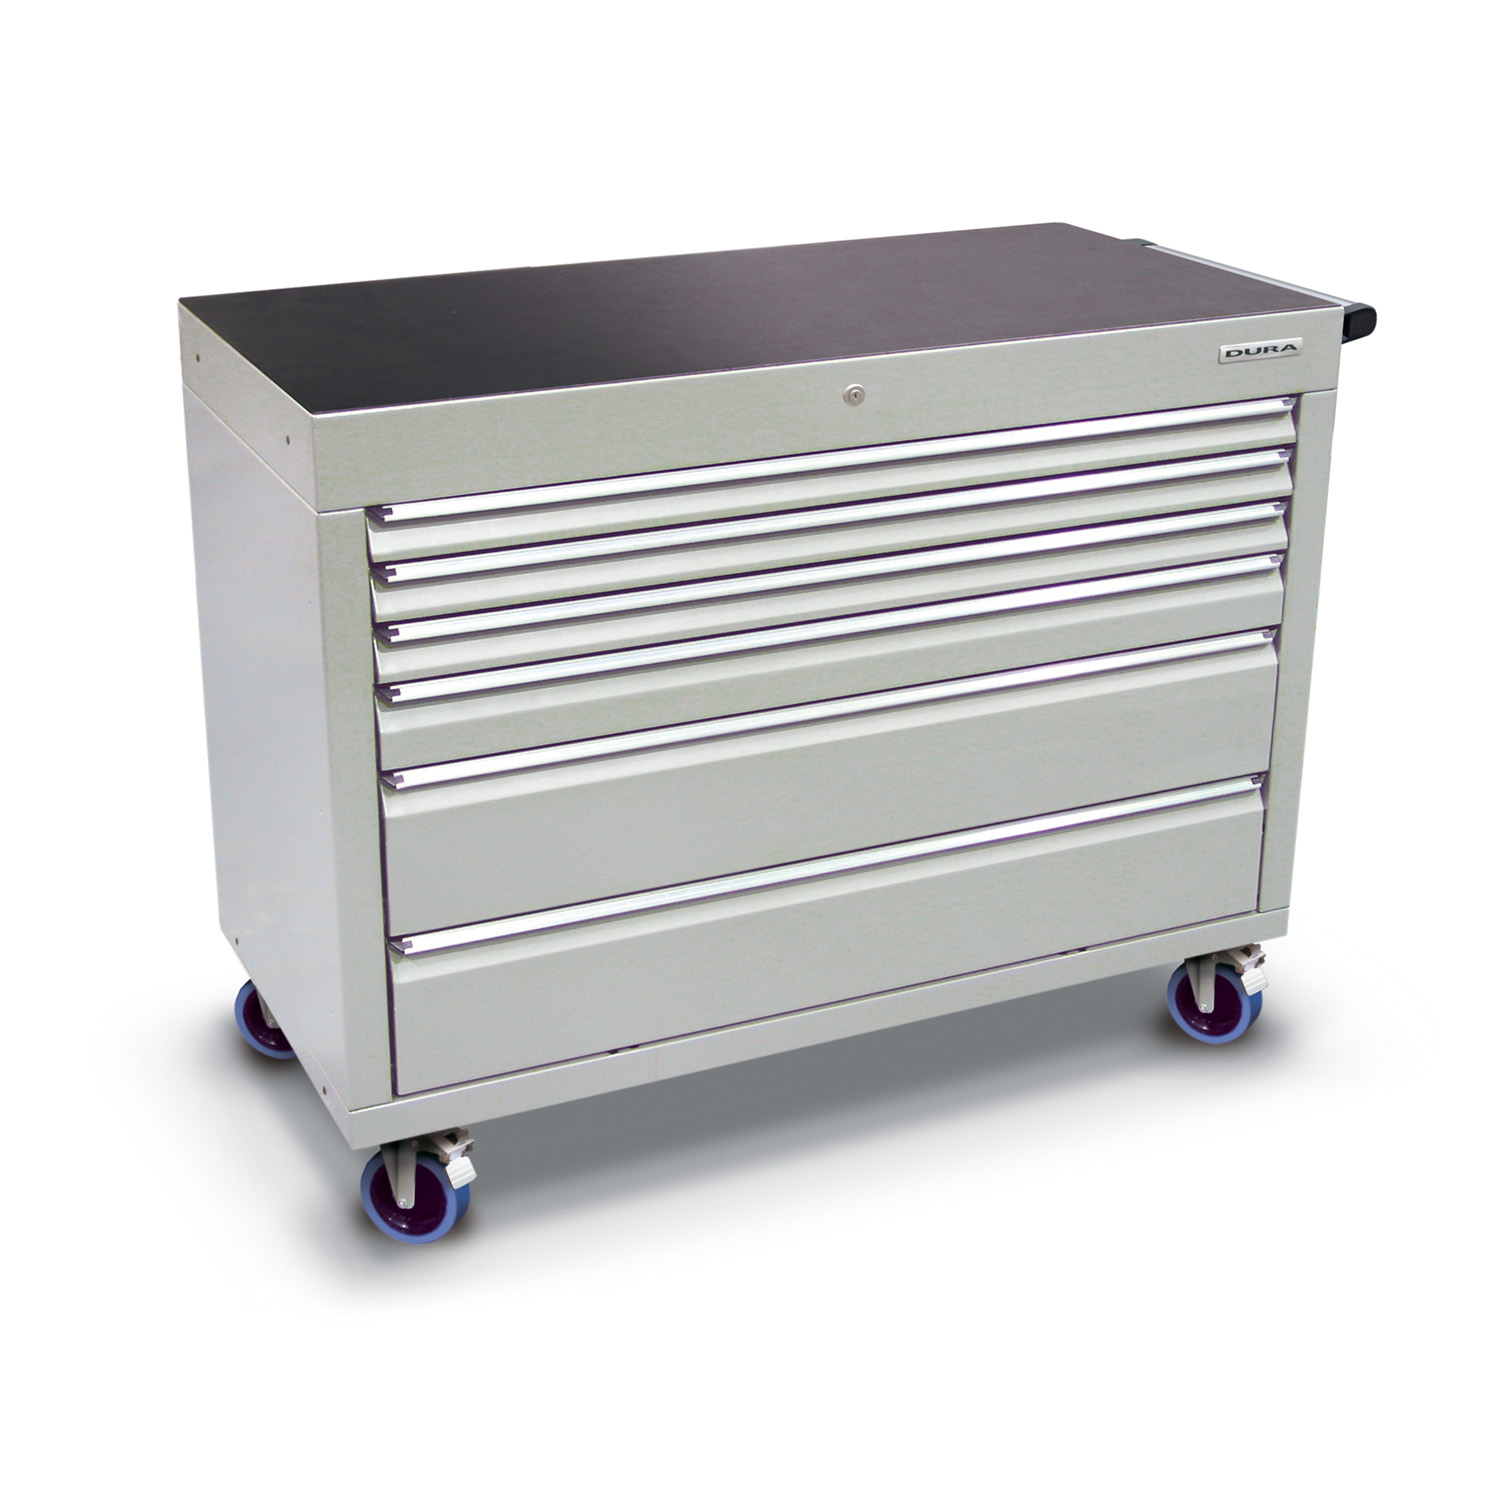 1200 series cabinet with 6 drawers (3 slim, 1 medium, 2 large) and castors